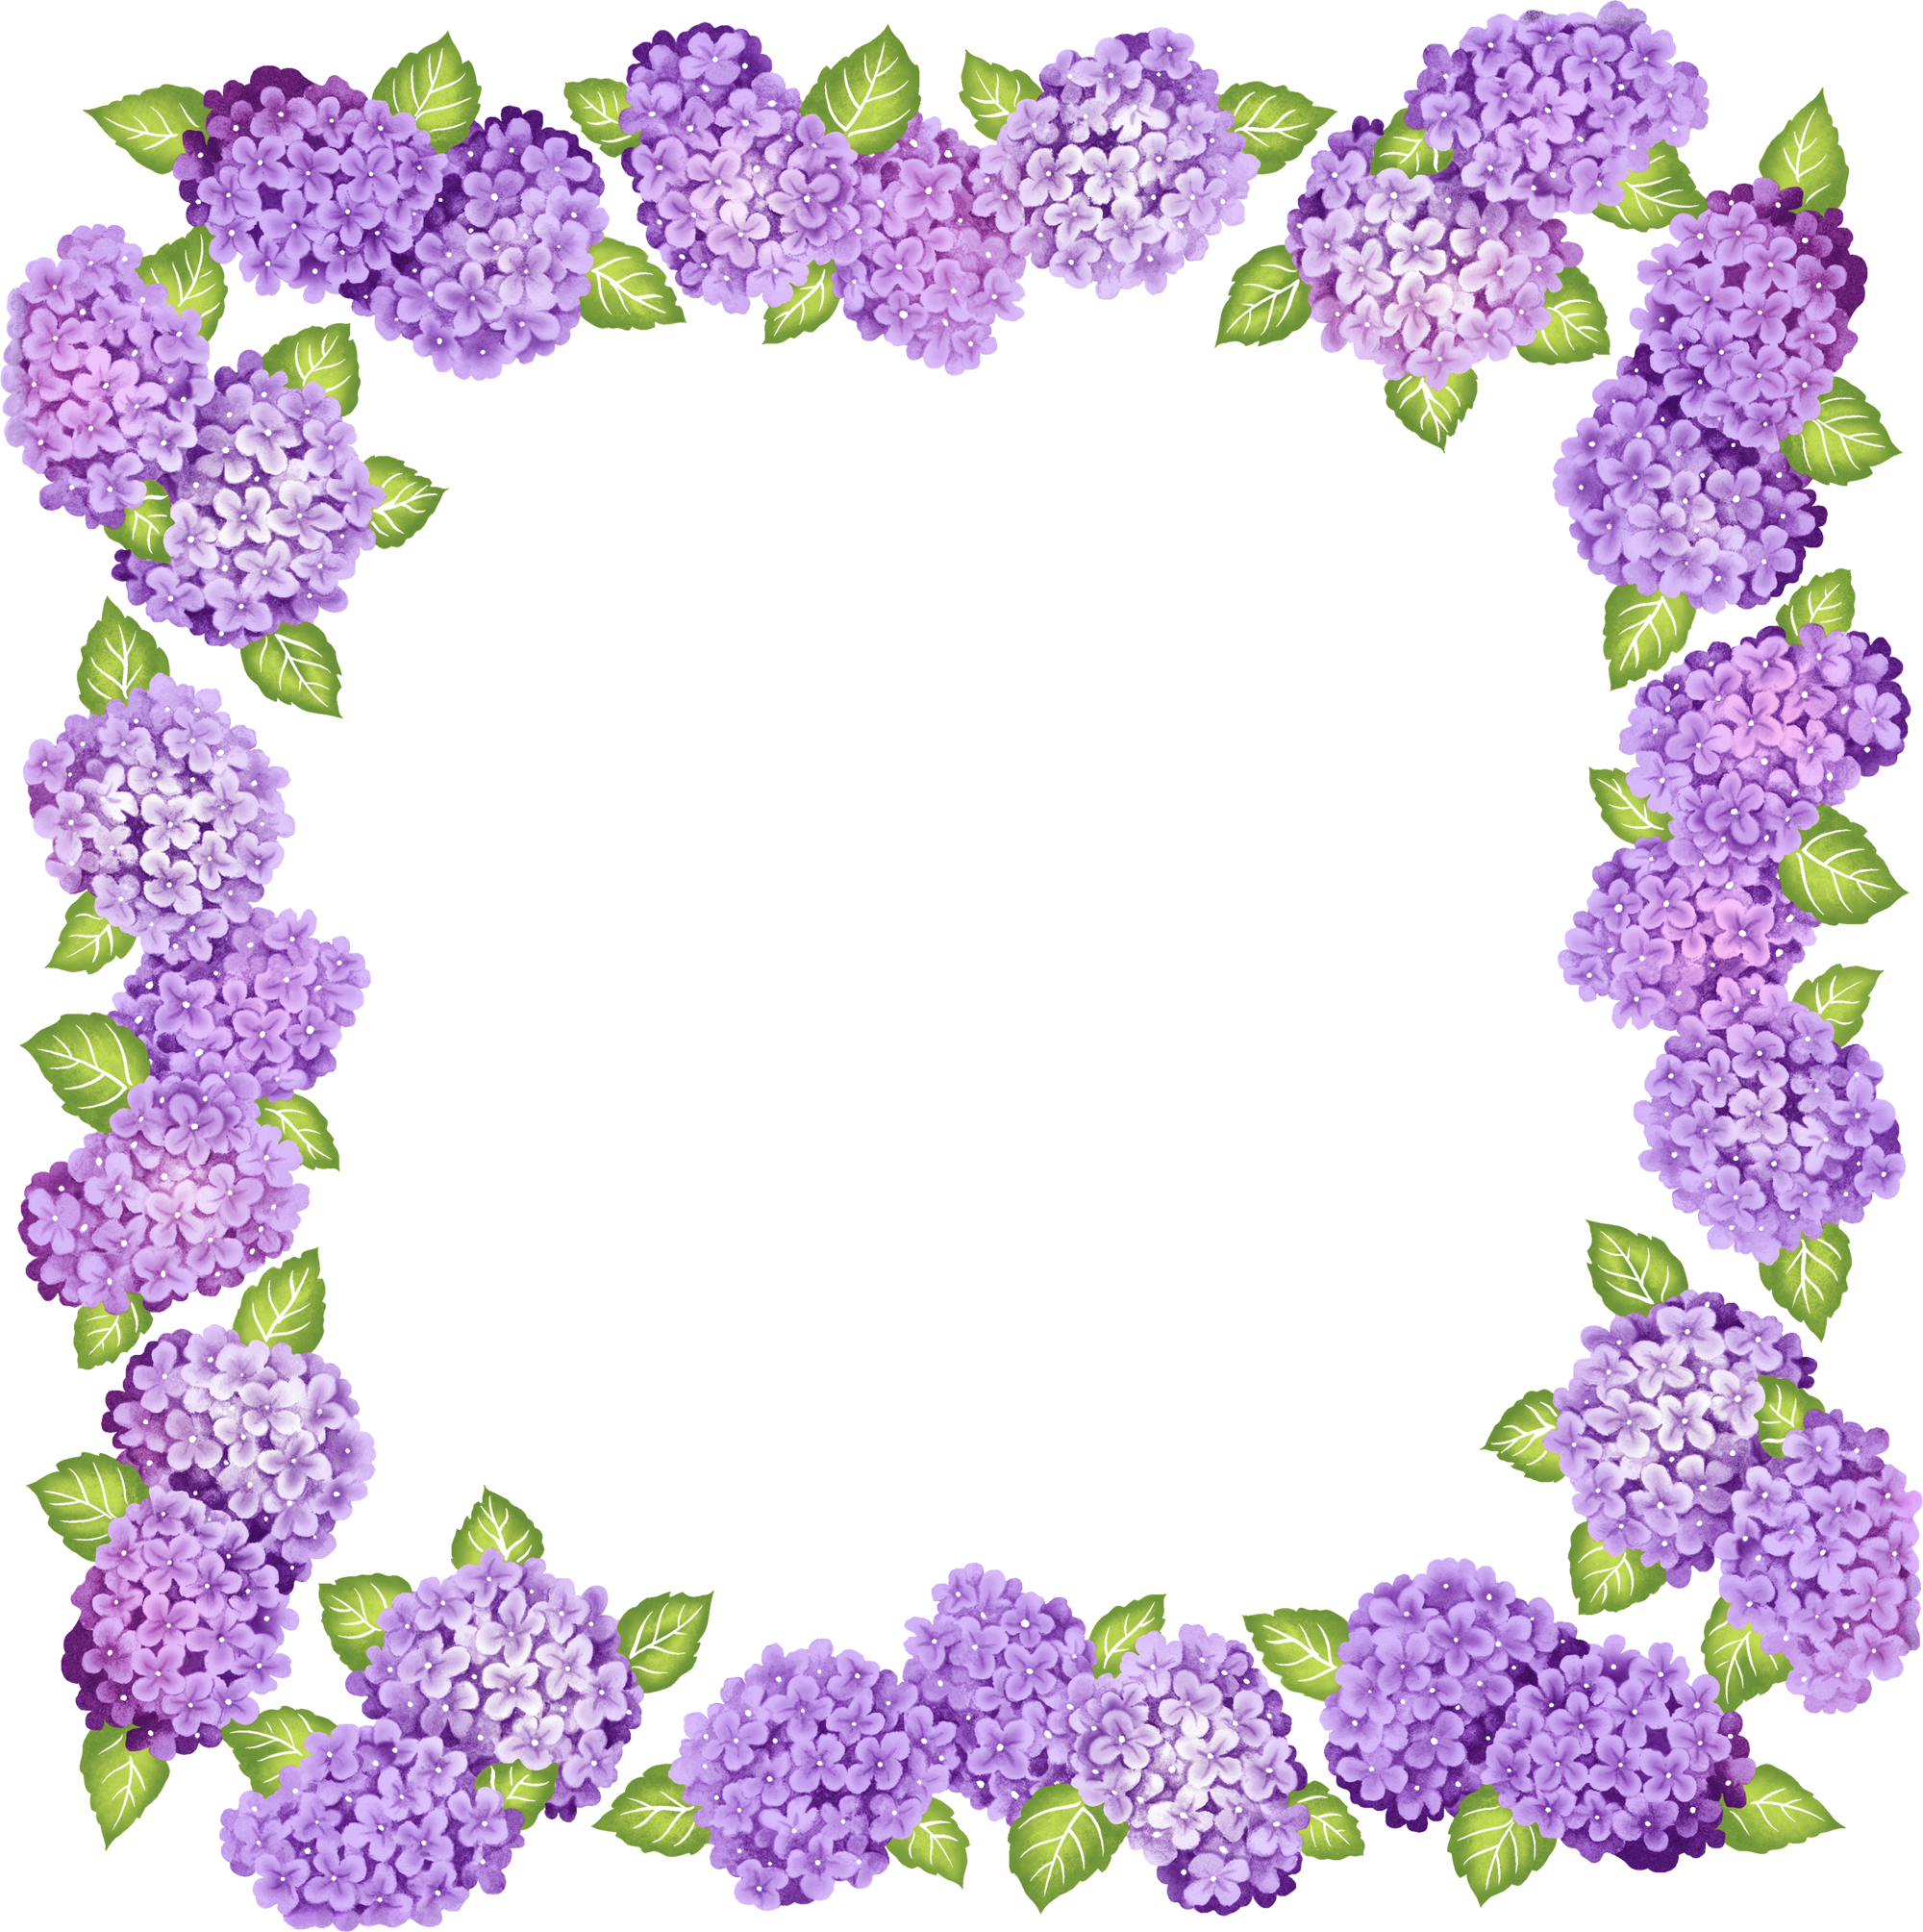 transparent frame clipart.